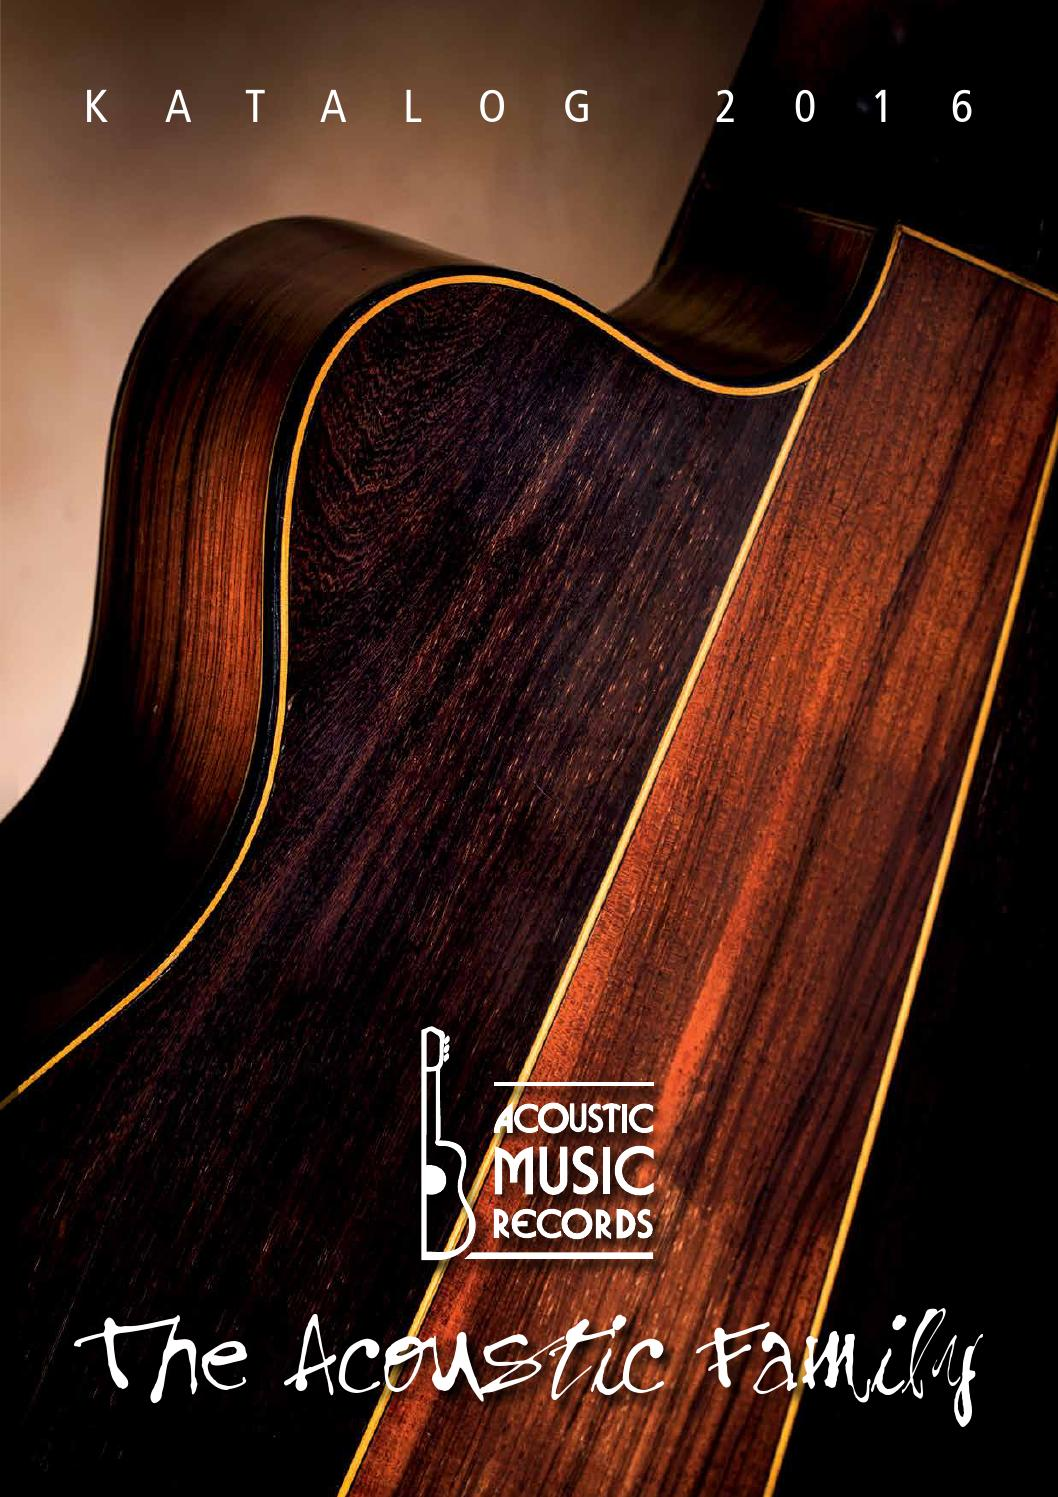 Acoustic Music Katalog 2016 By Gmbh Co Kg Issuu Tas Tangan Goldie Lux Leather